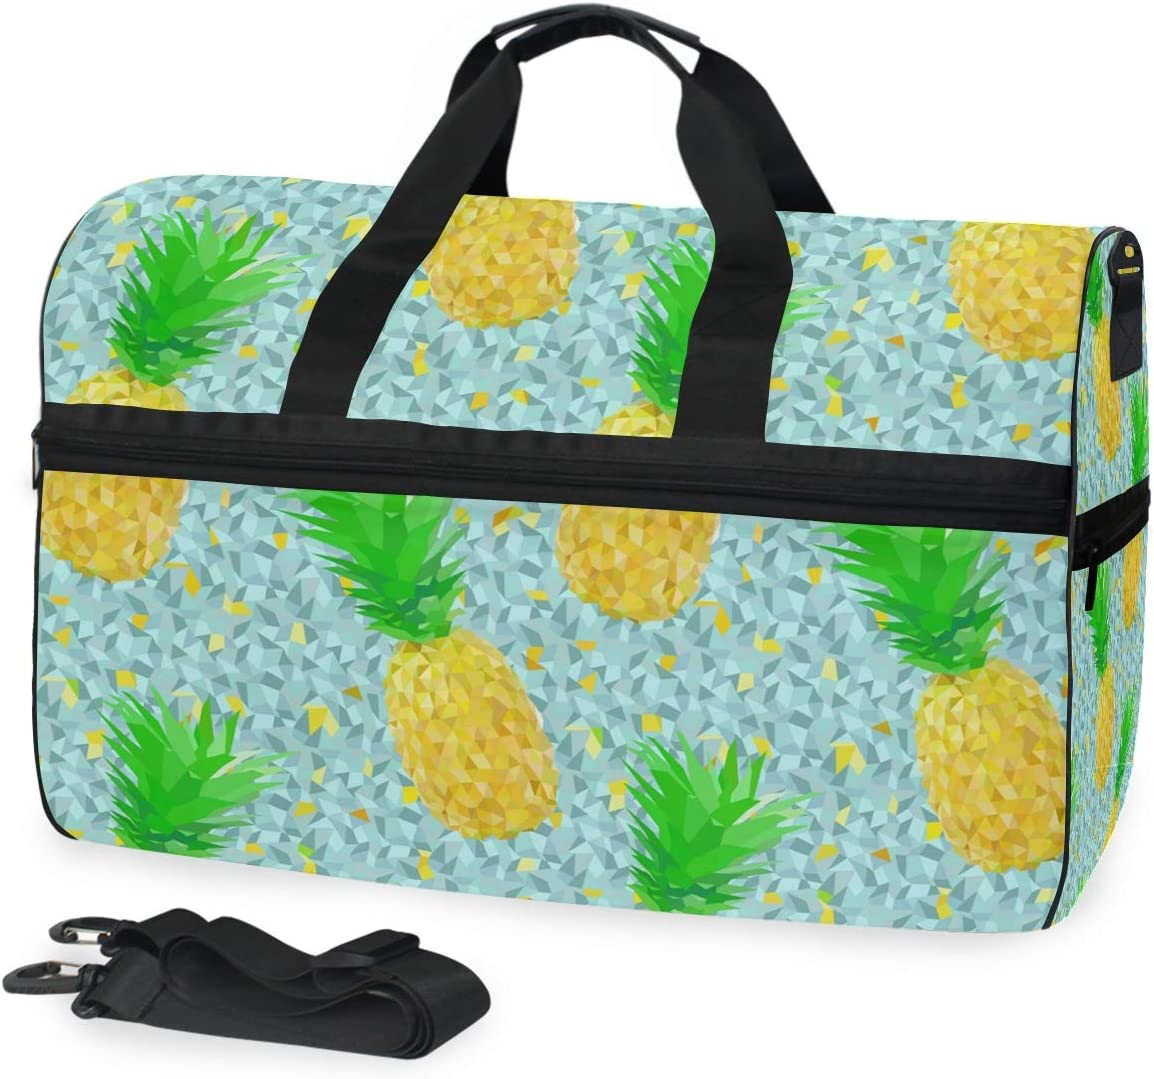 Gold Pineapple Sports Gym Bag with Shoes Compartment Travel Duffel Bag for Men and Women